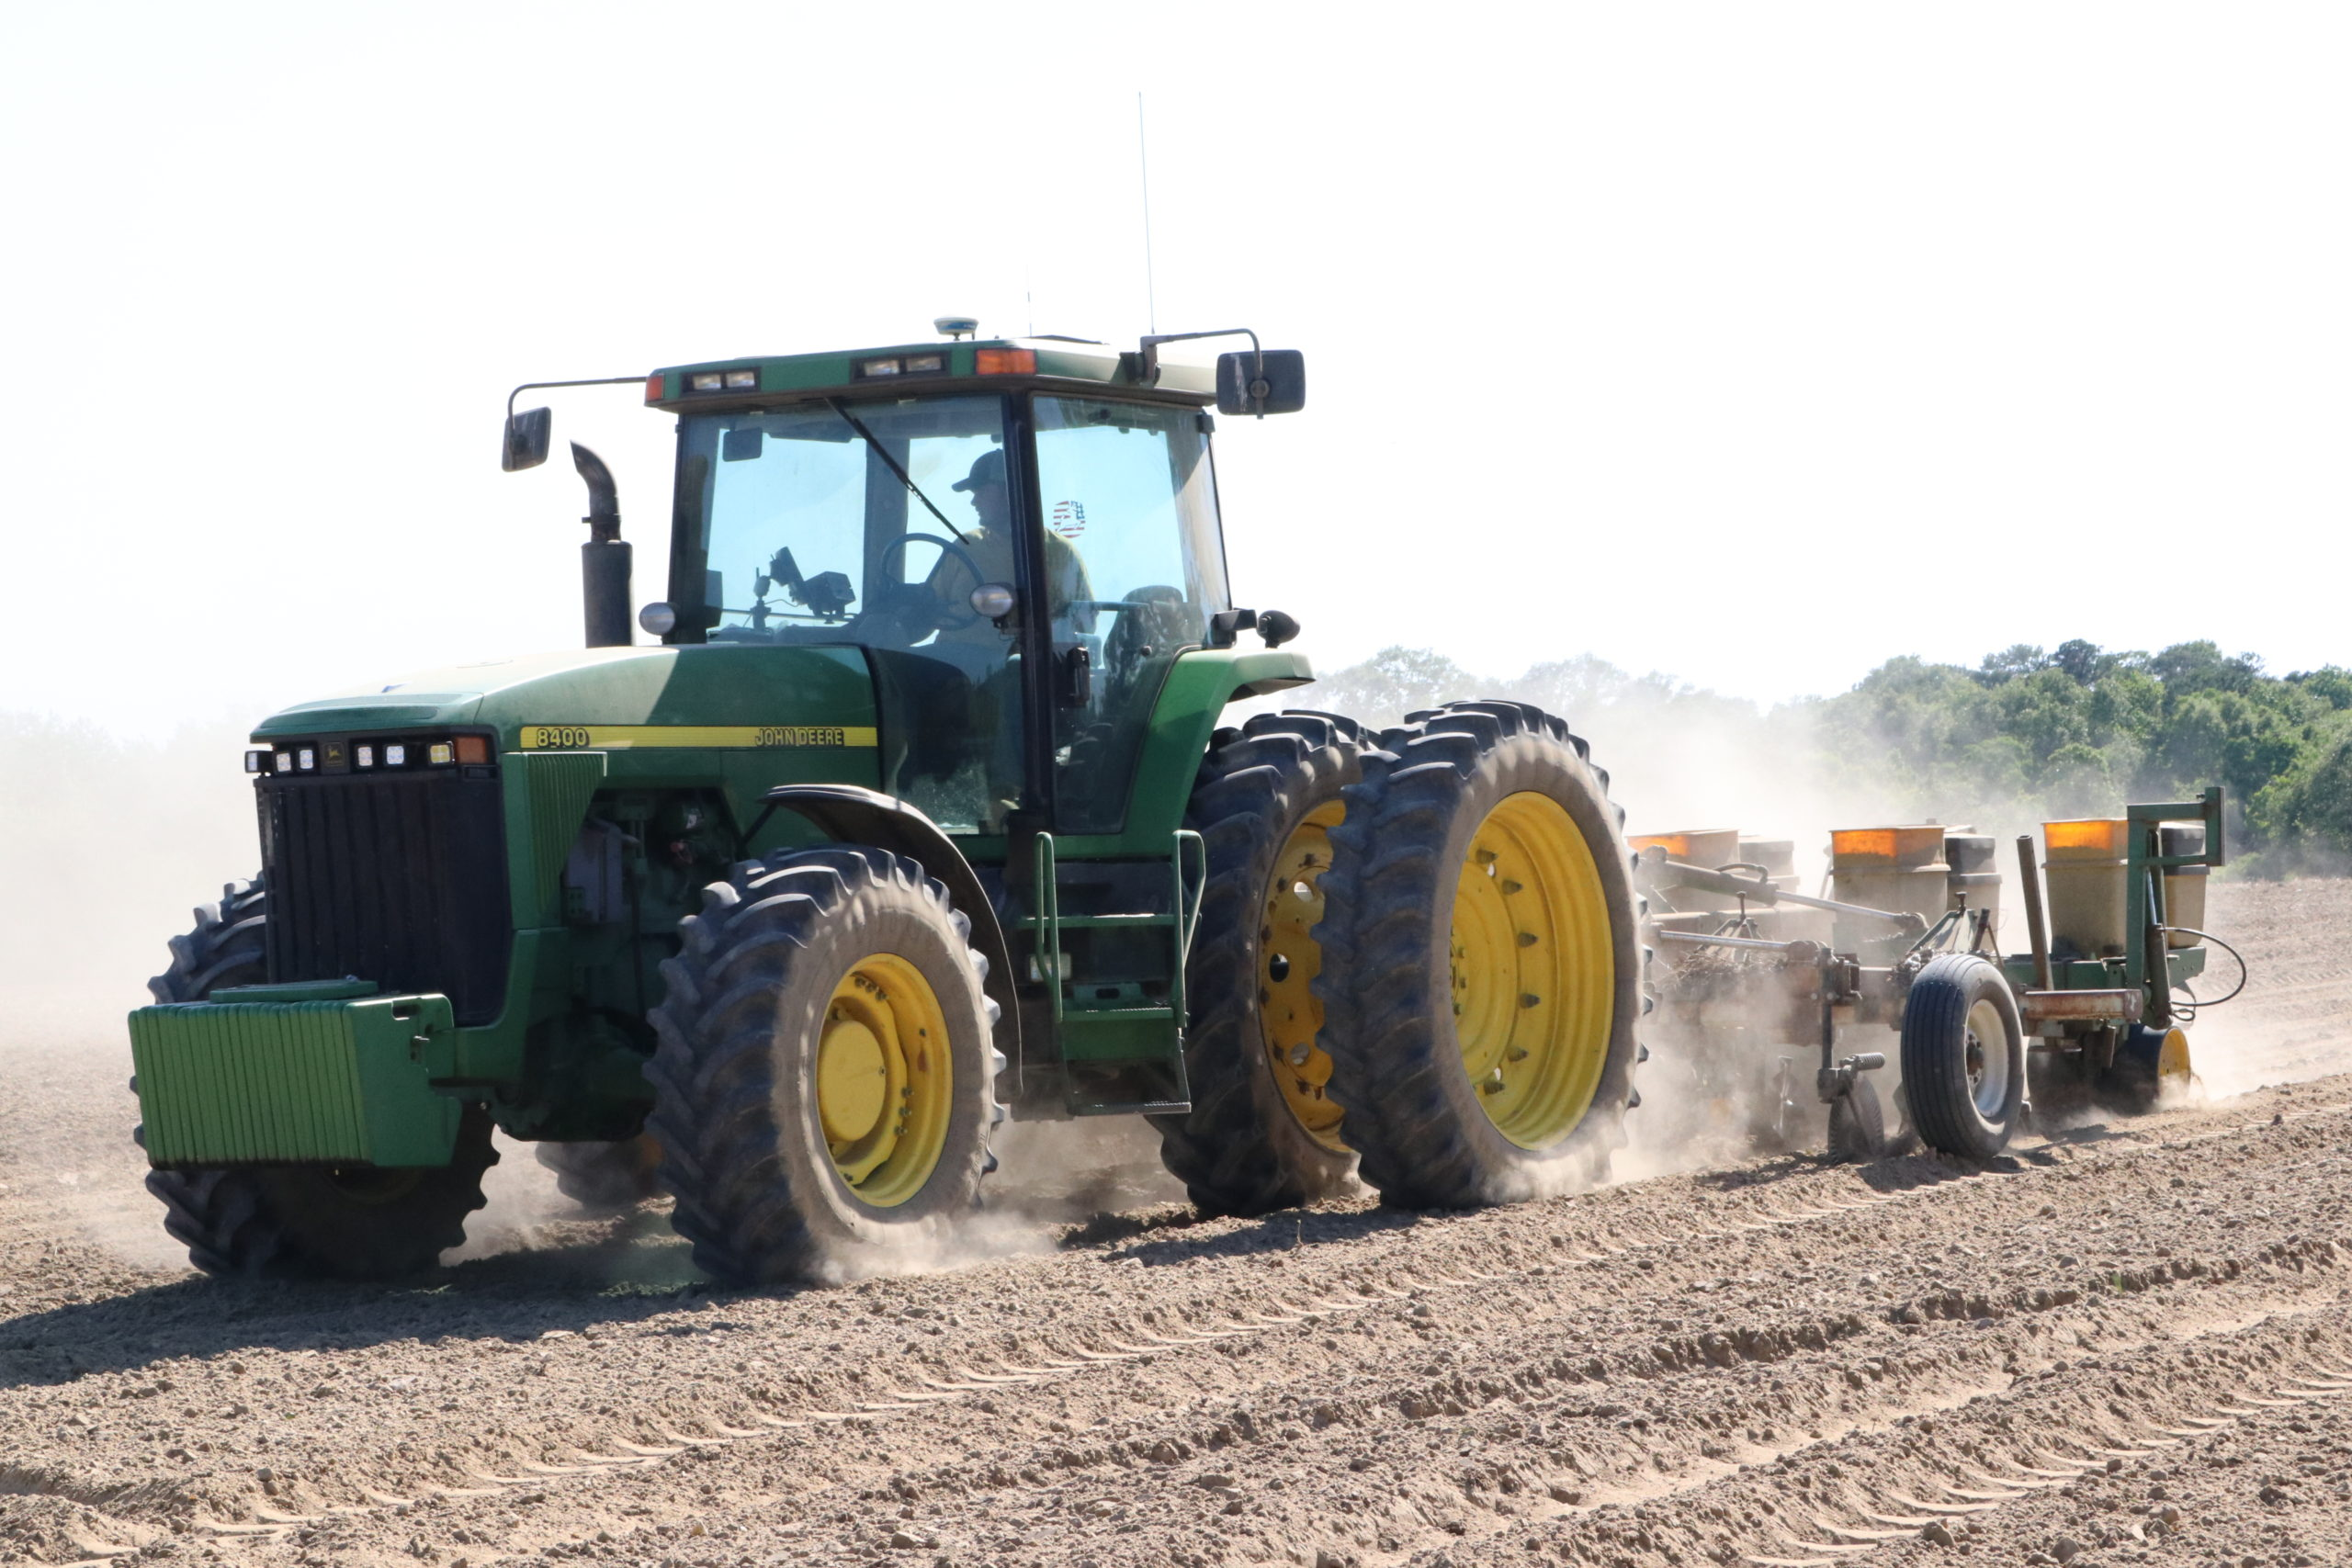 USDA TO SURVEY FARMERS' PLANTING INTENTIONS FOR 2021